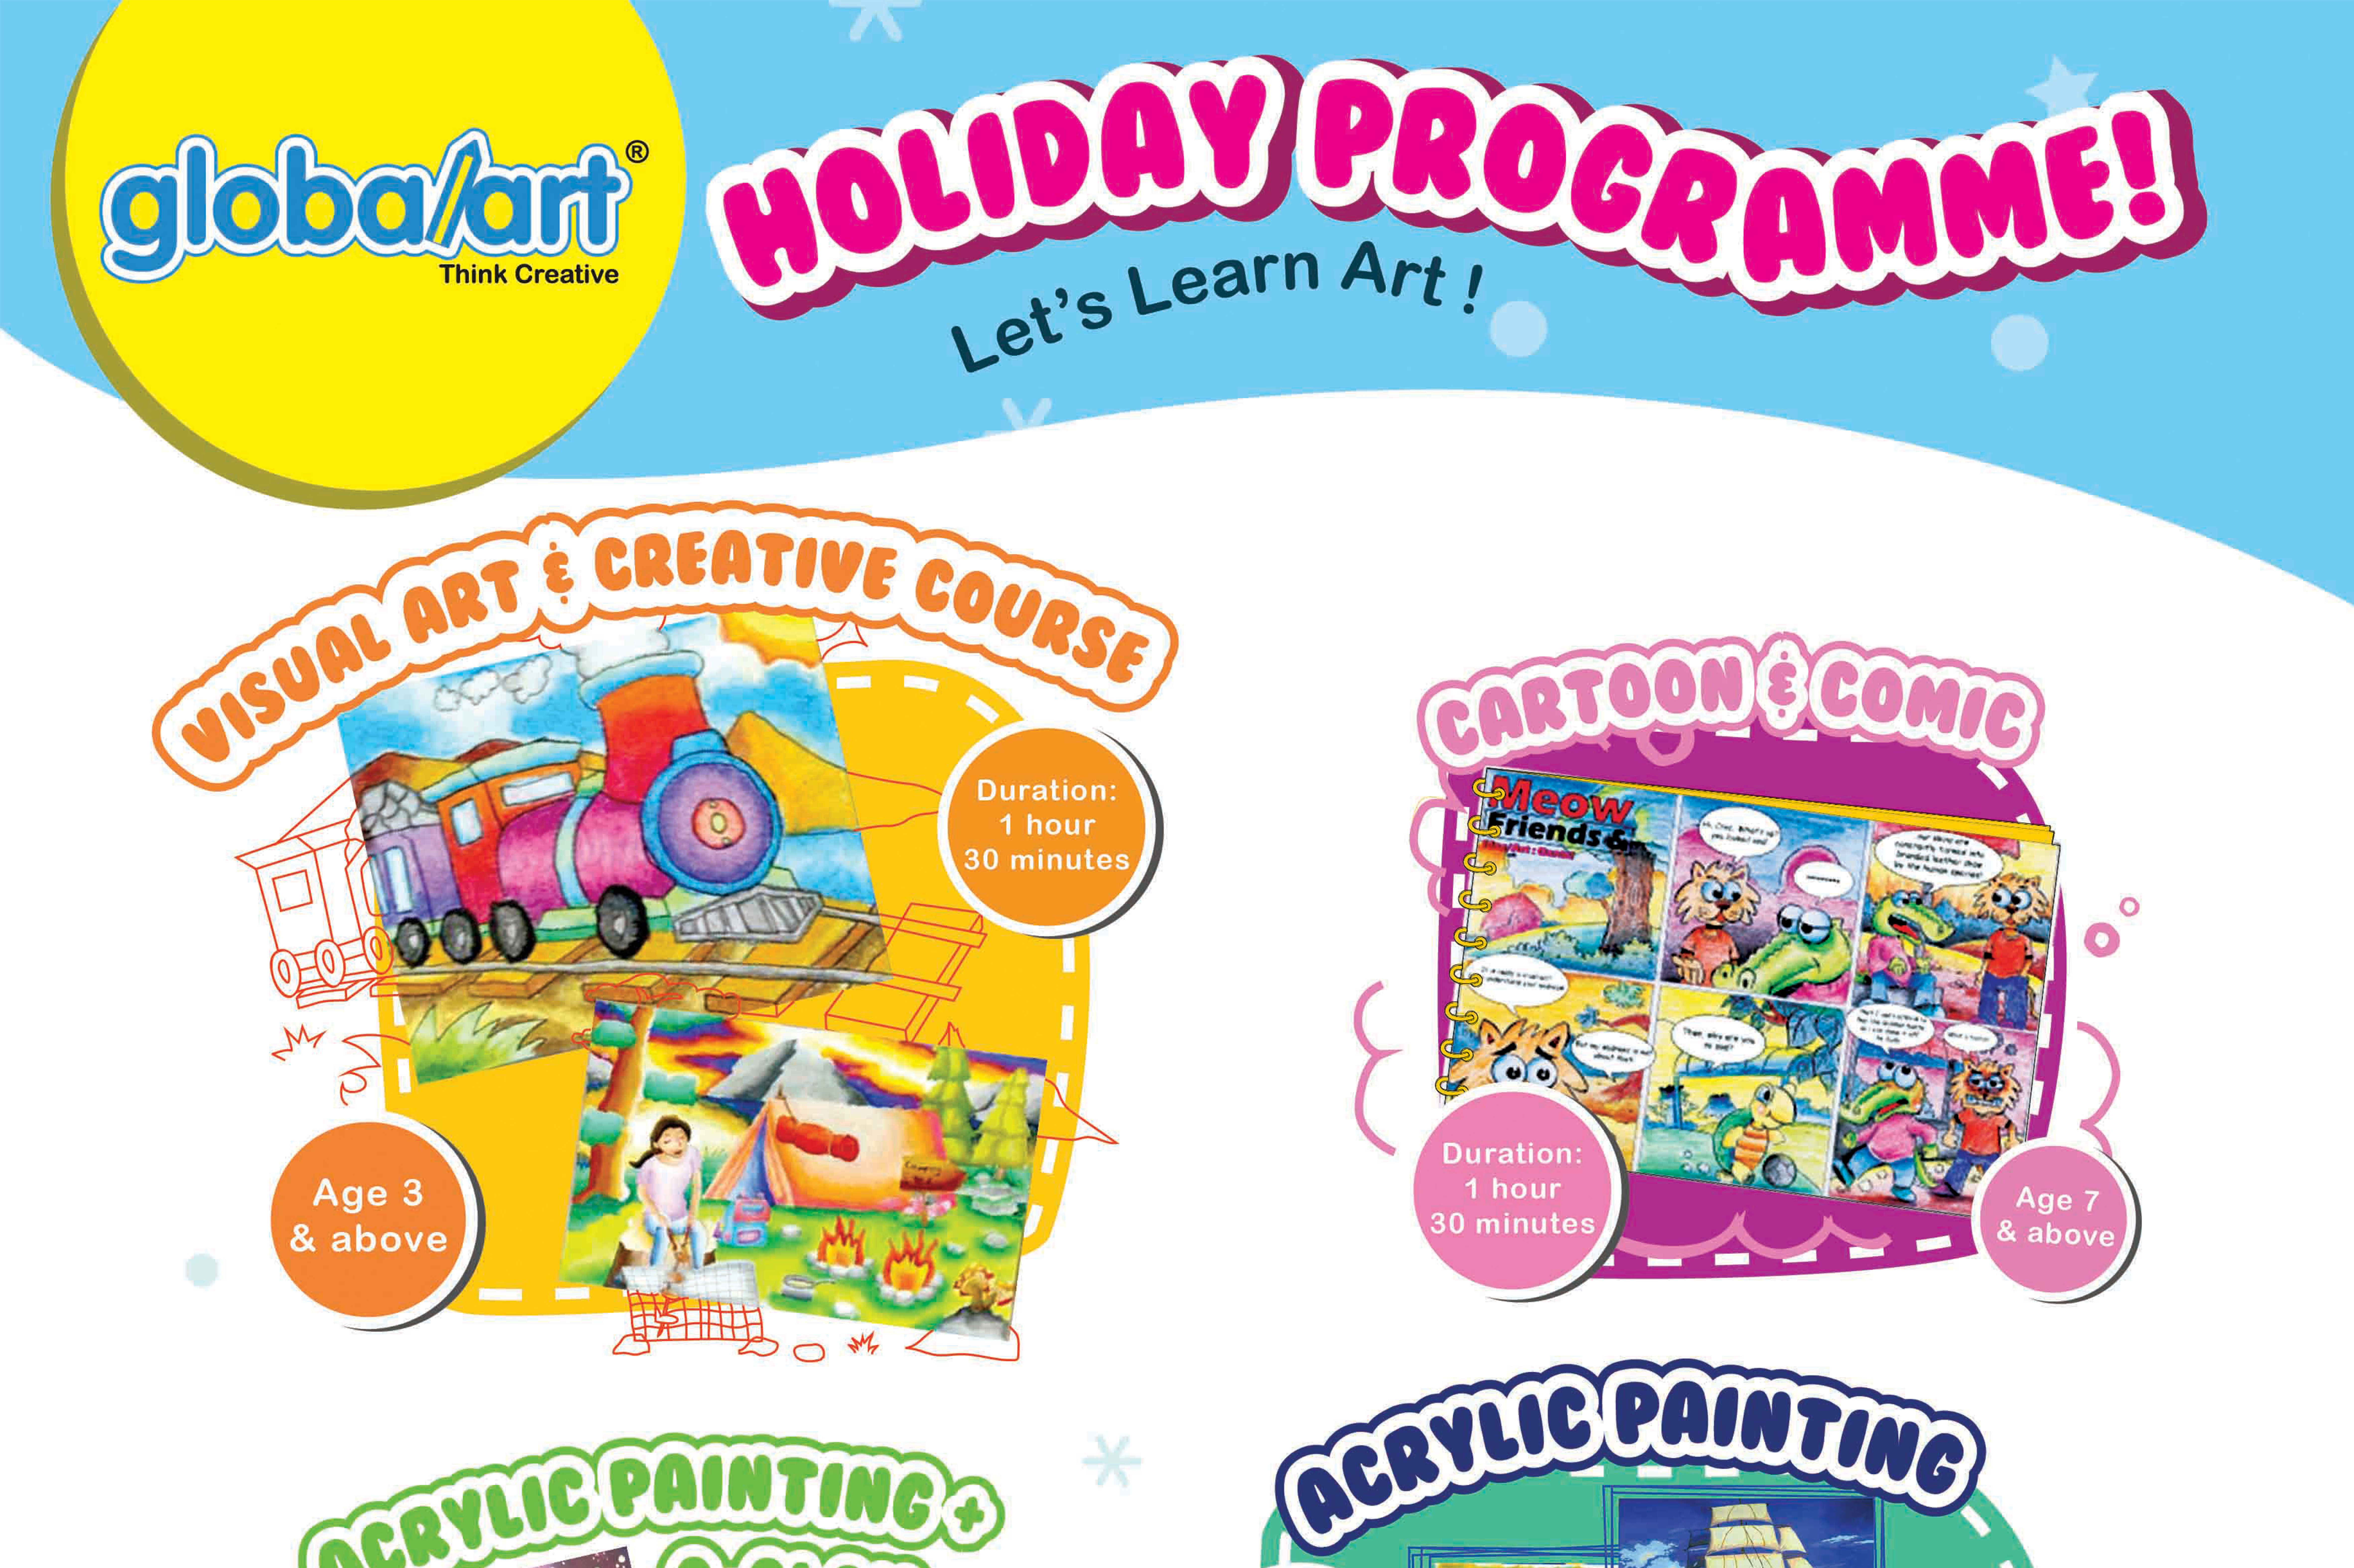 September 2019 Holiday Programmes are out!